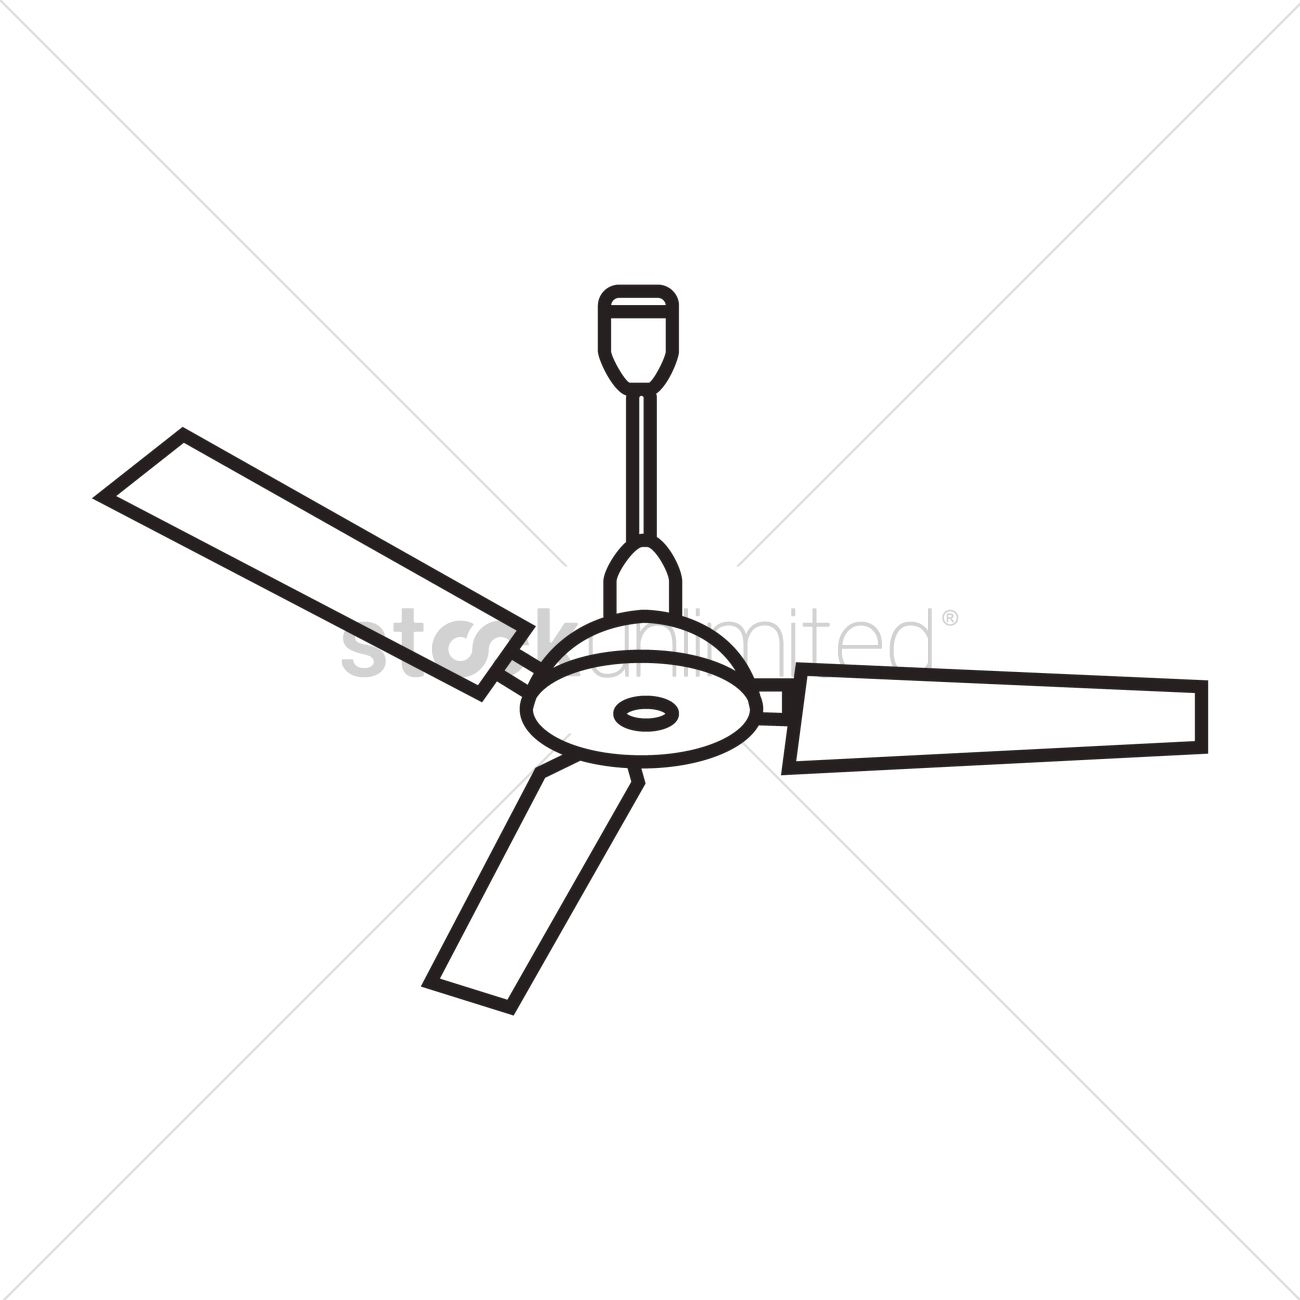 Ceiling Design Vector Ceiling Fan Vector Image 1467607 Stockunlimited